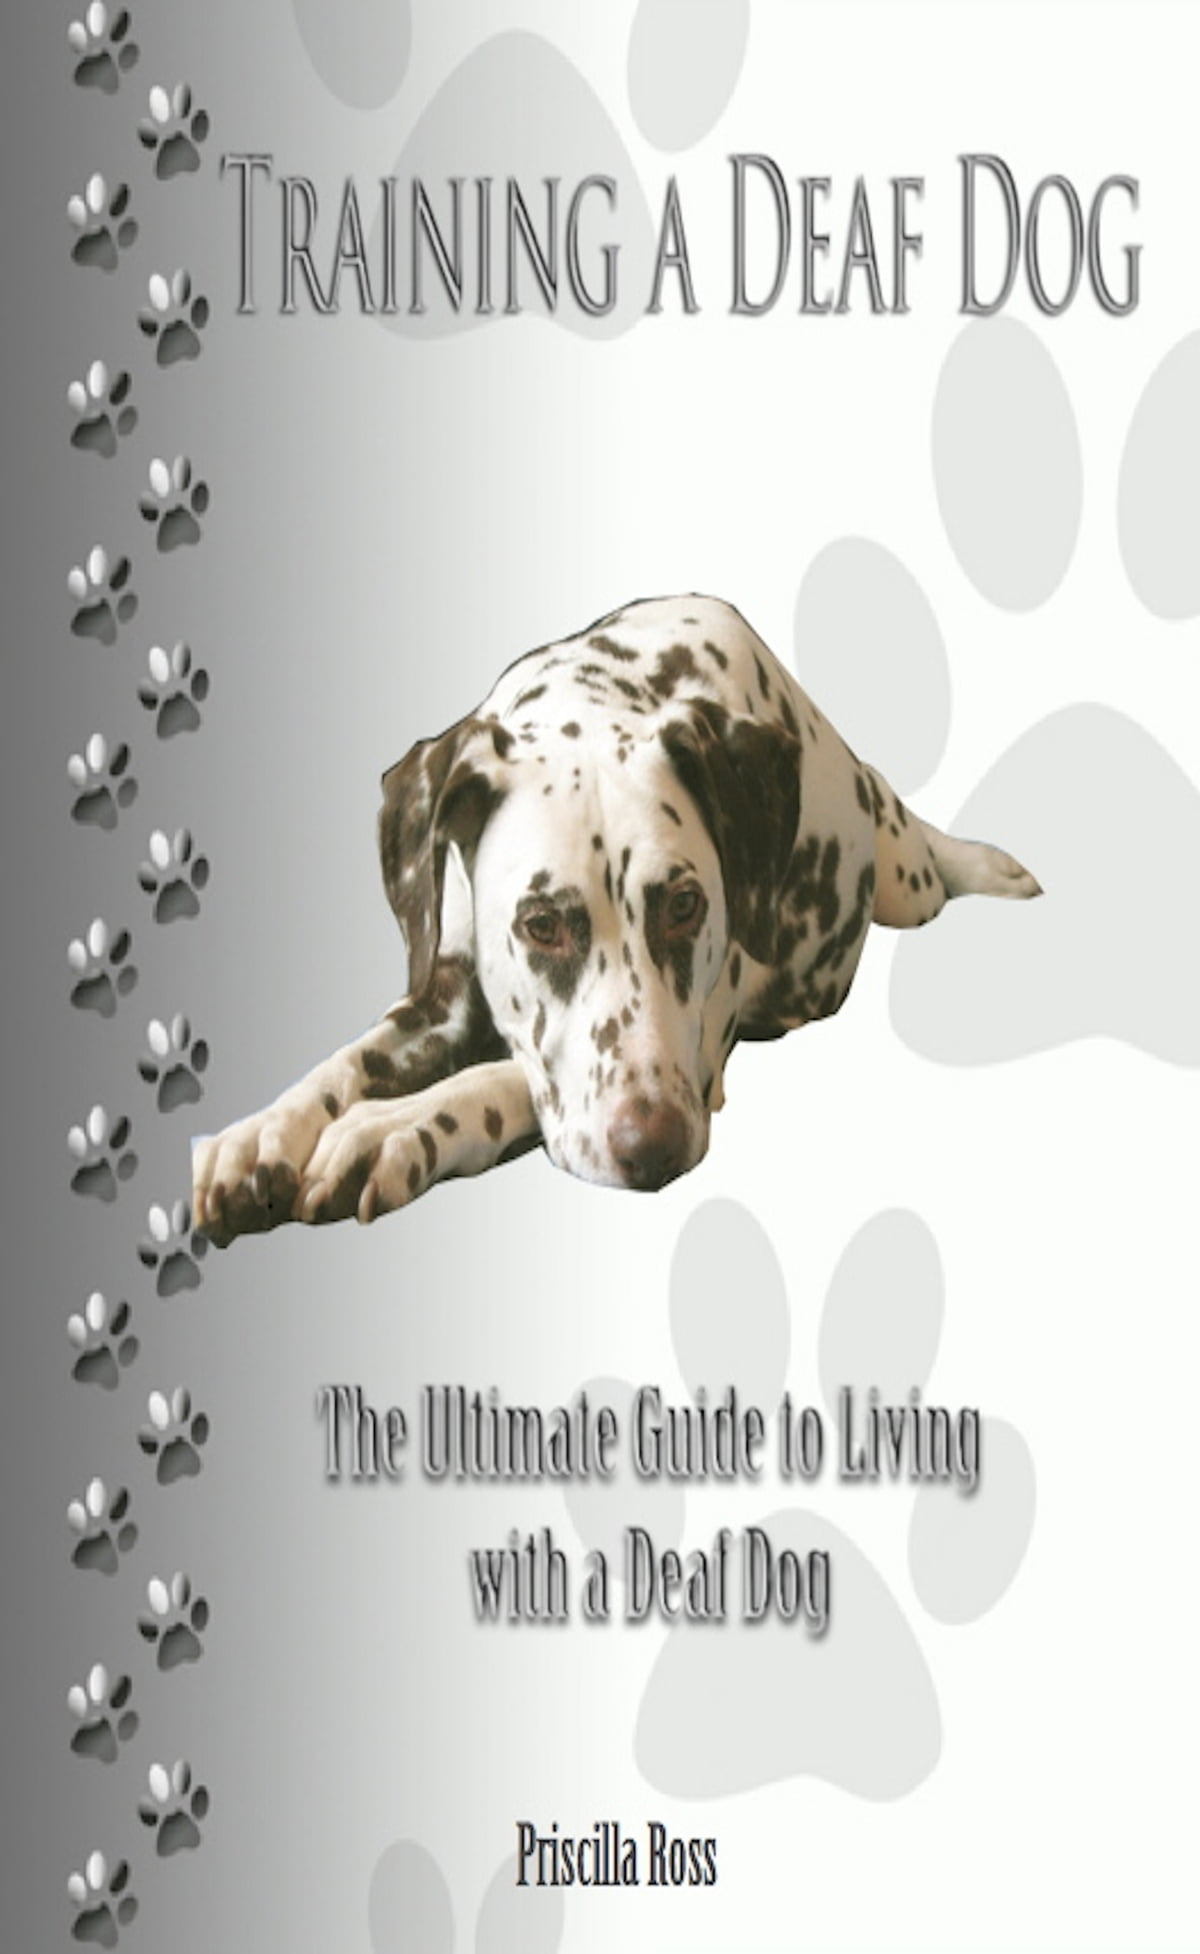 Training A Deaf Dog Ebook By Priscilla Ross 1230000002648